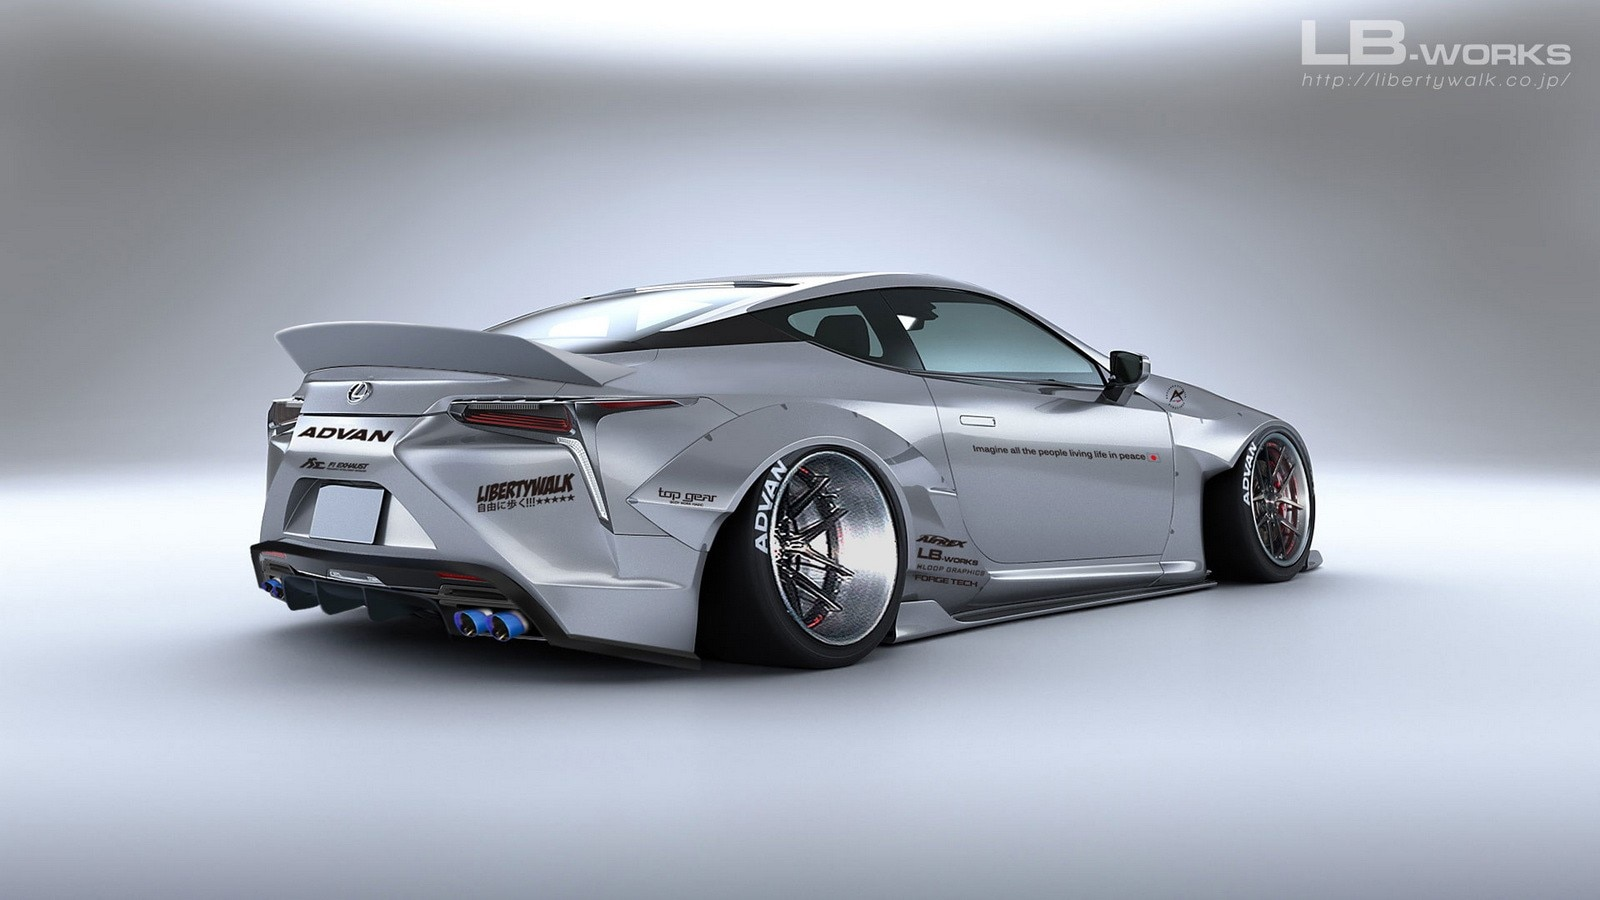 Liberty Walk Lexus Lc 500 Looks Ludicrous Automobile Magazine